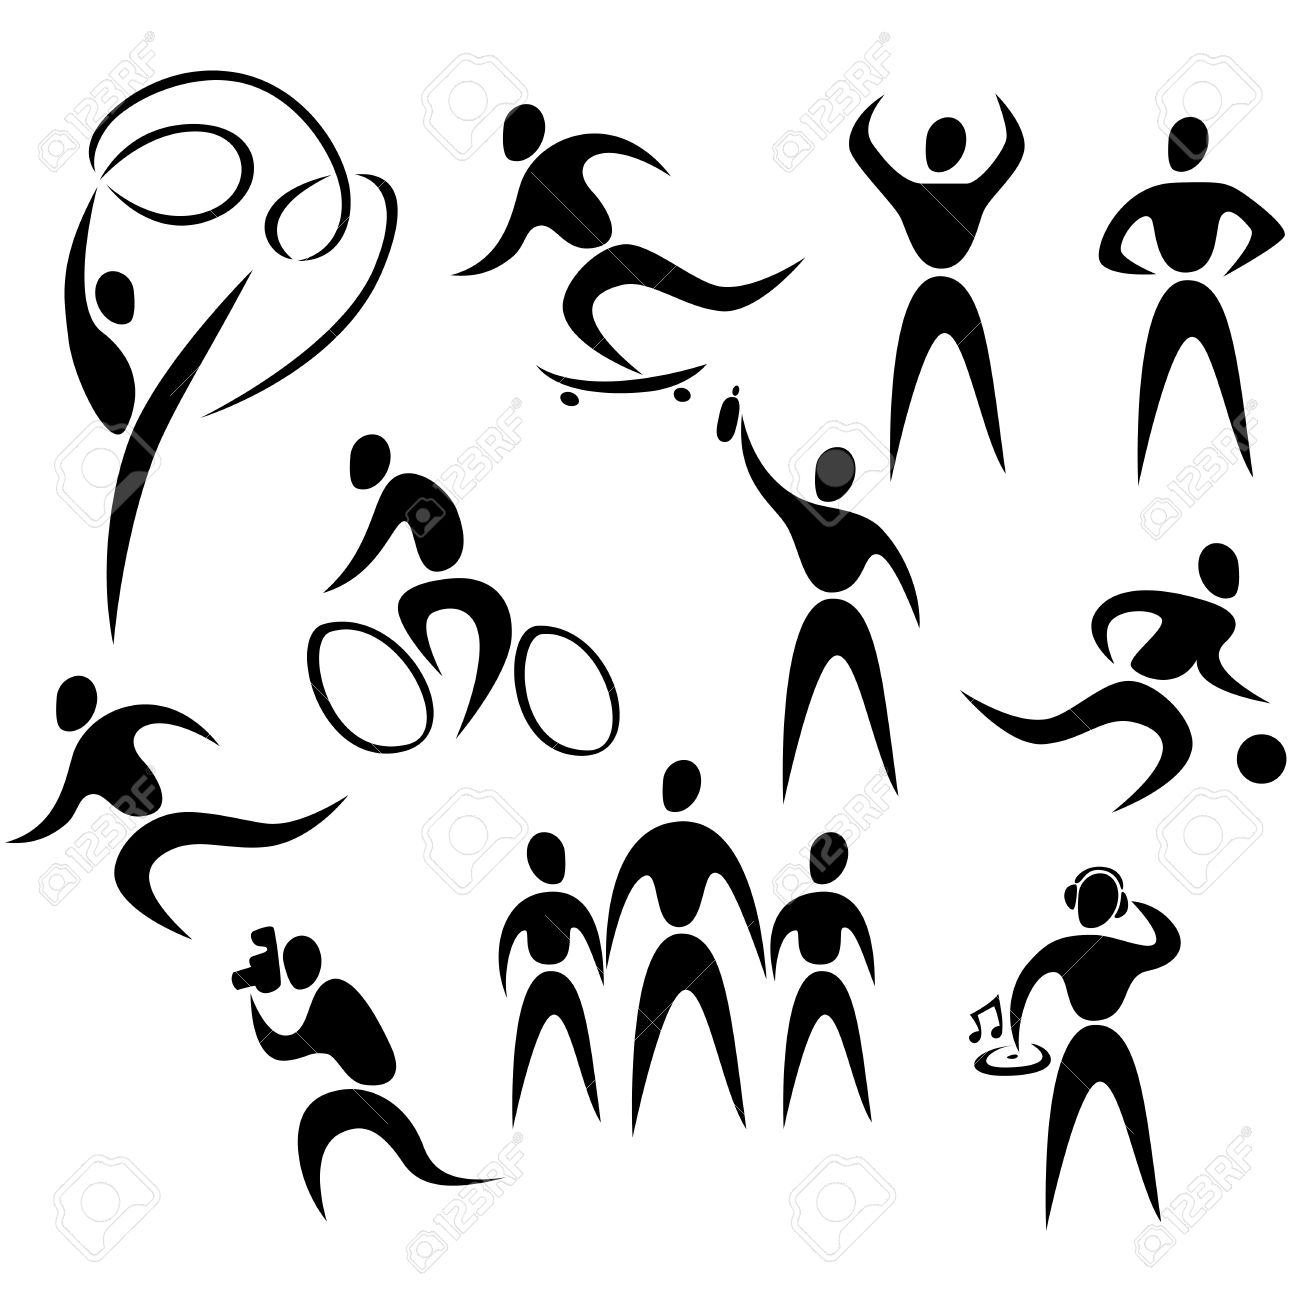 Healthy People Clipart